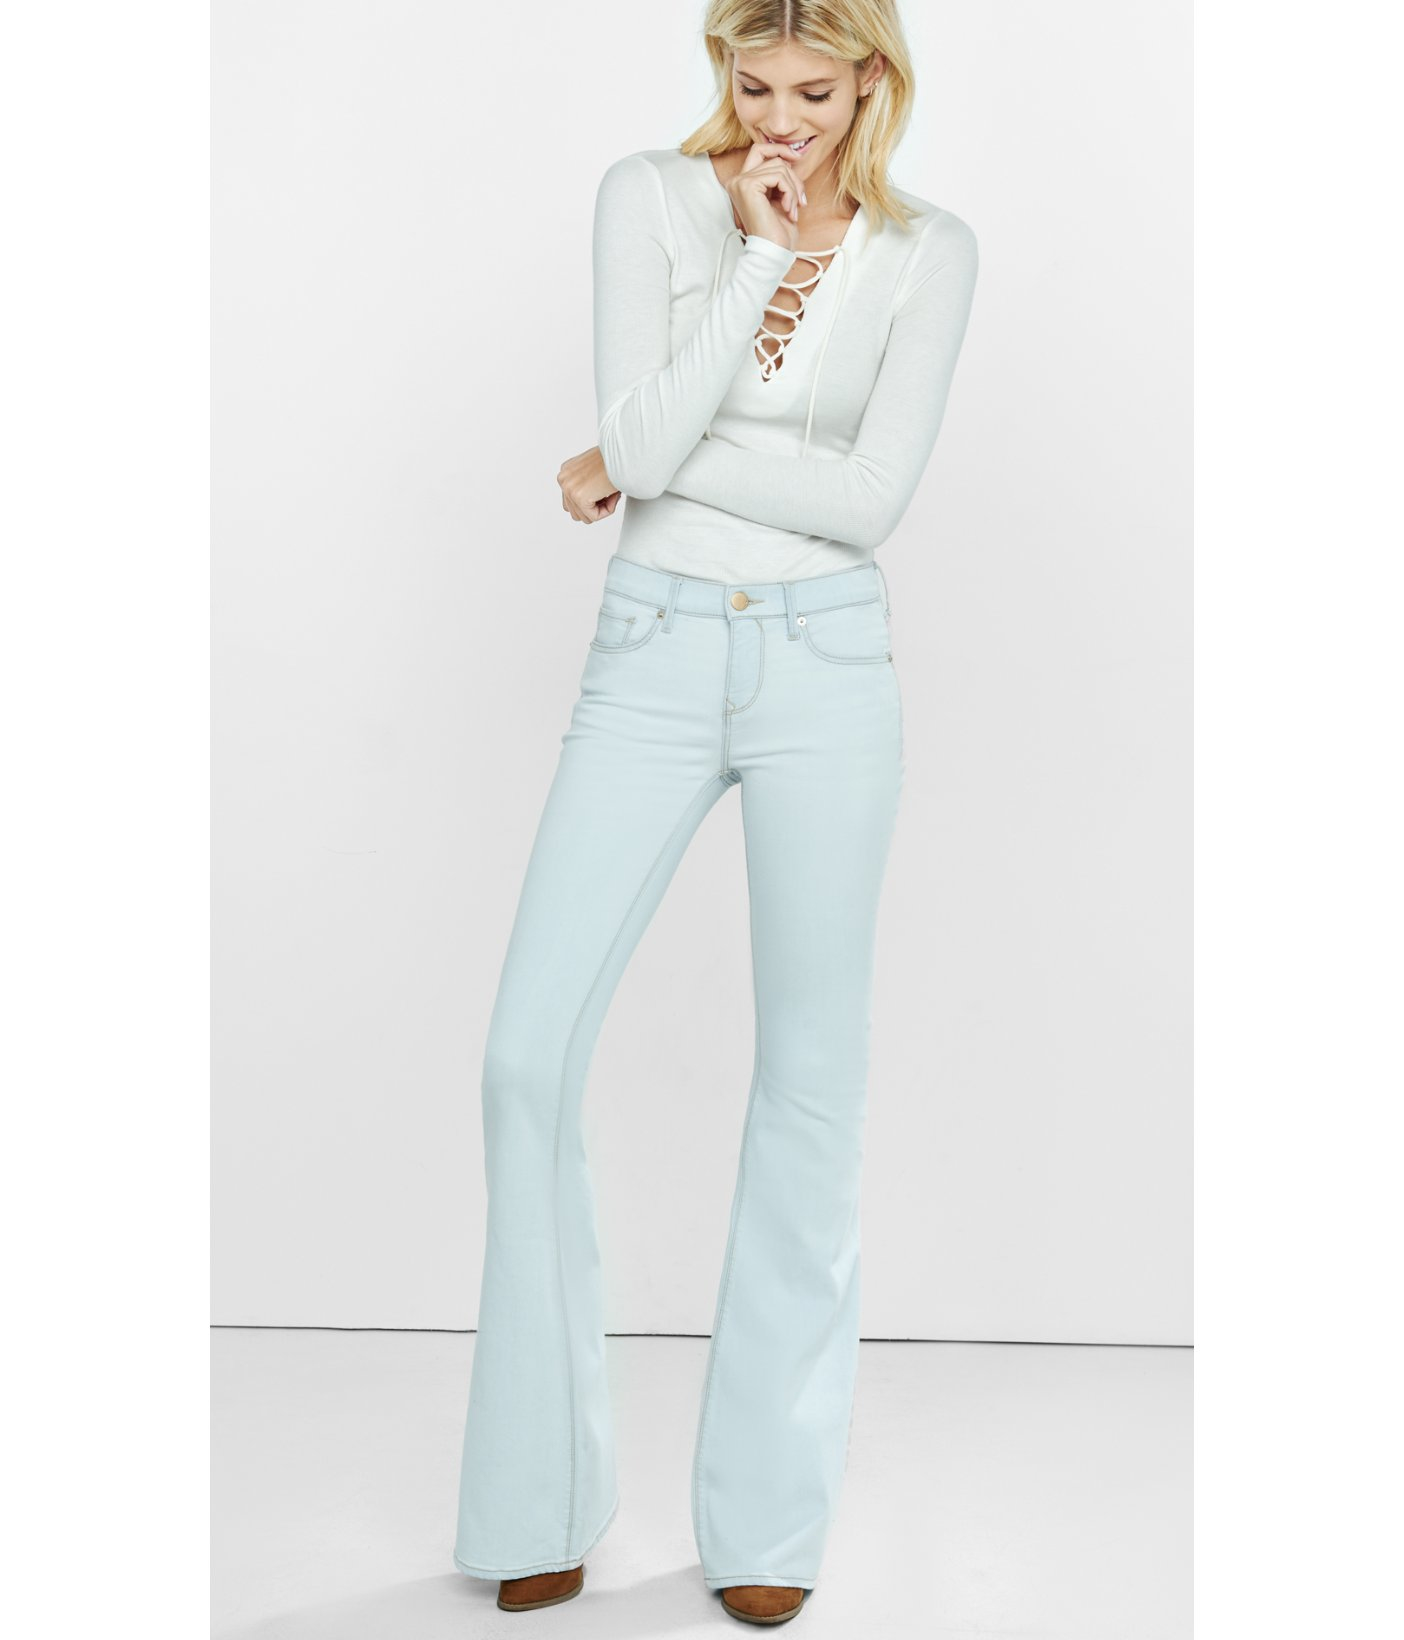 6986903354a Lyst - Express Light Wash Mid Rise Bell Flare Jeans in Blue